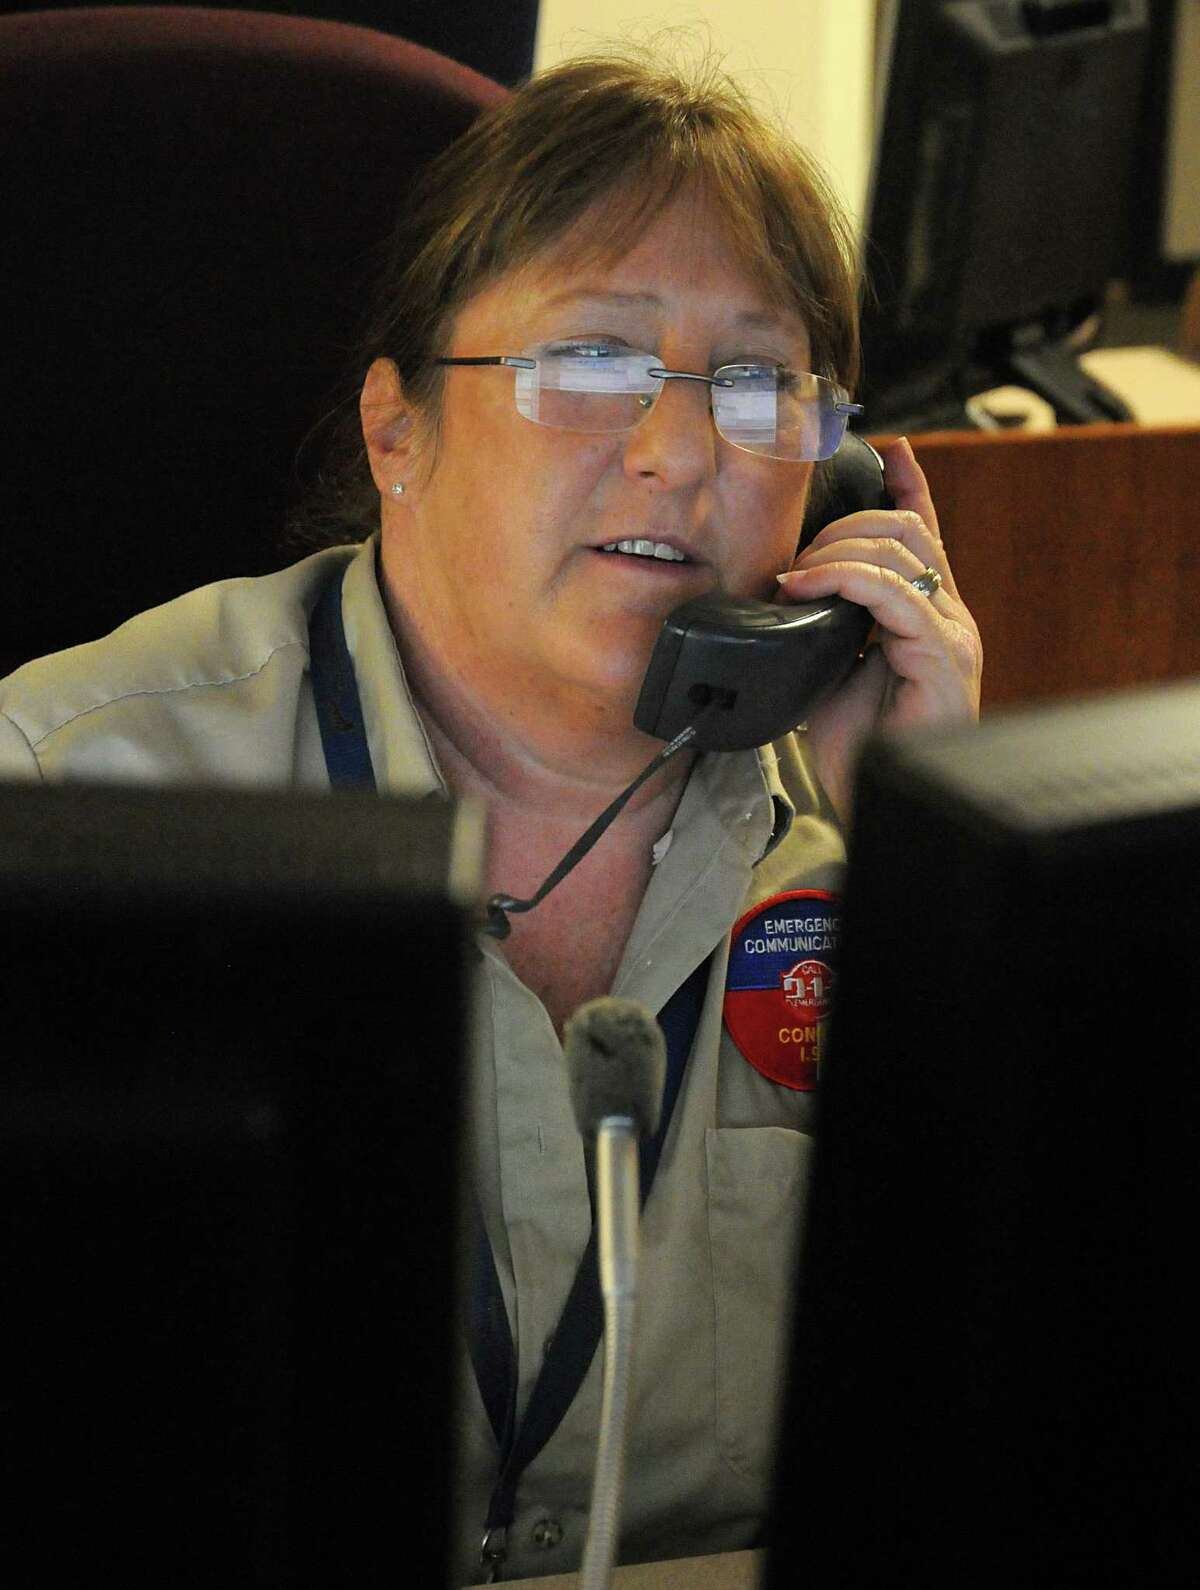 Conroe ISD police department telecommunications operator Lisa Dunham keeps the lines of communication open while tracking the computers and banks of cameras designed to keep track of all schools and other facilities in the district.